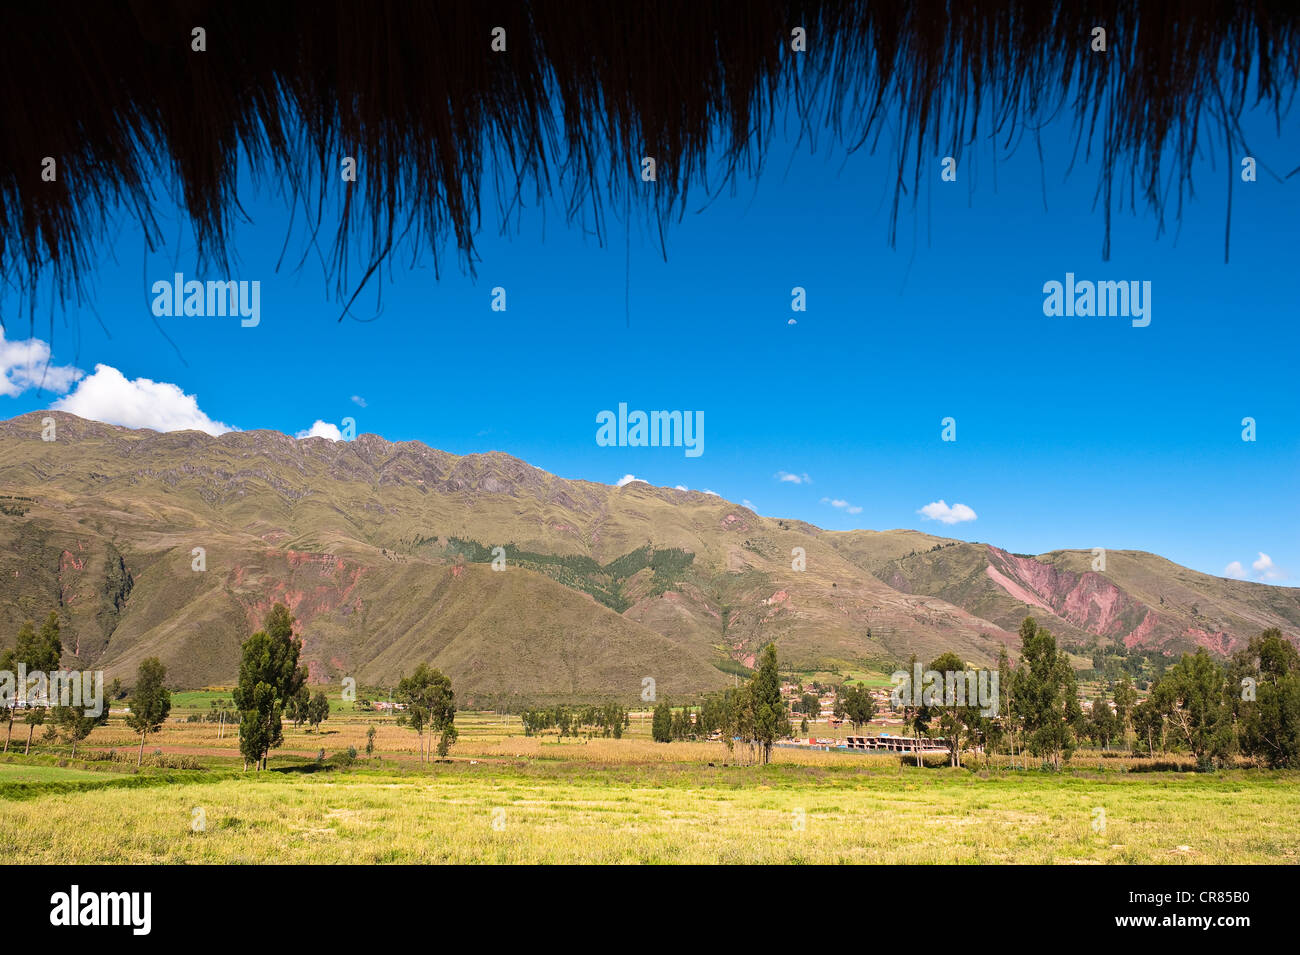 Peru, Cuzco Province, Huasao, listed as mystical touristic village, view of Cuzco south valley - Stock Image